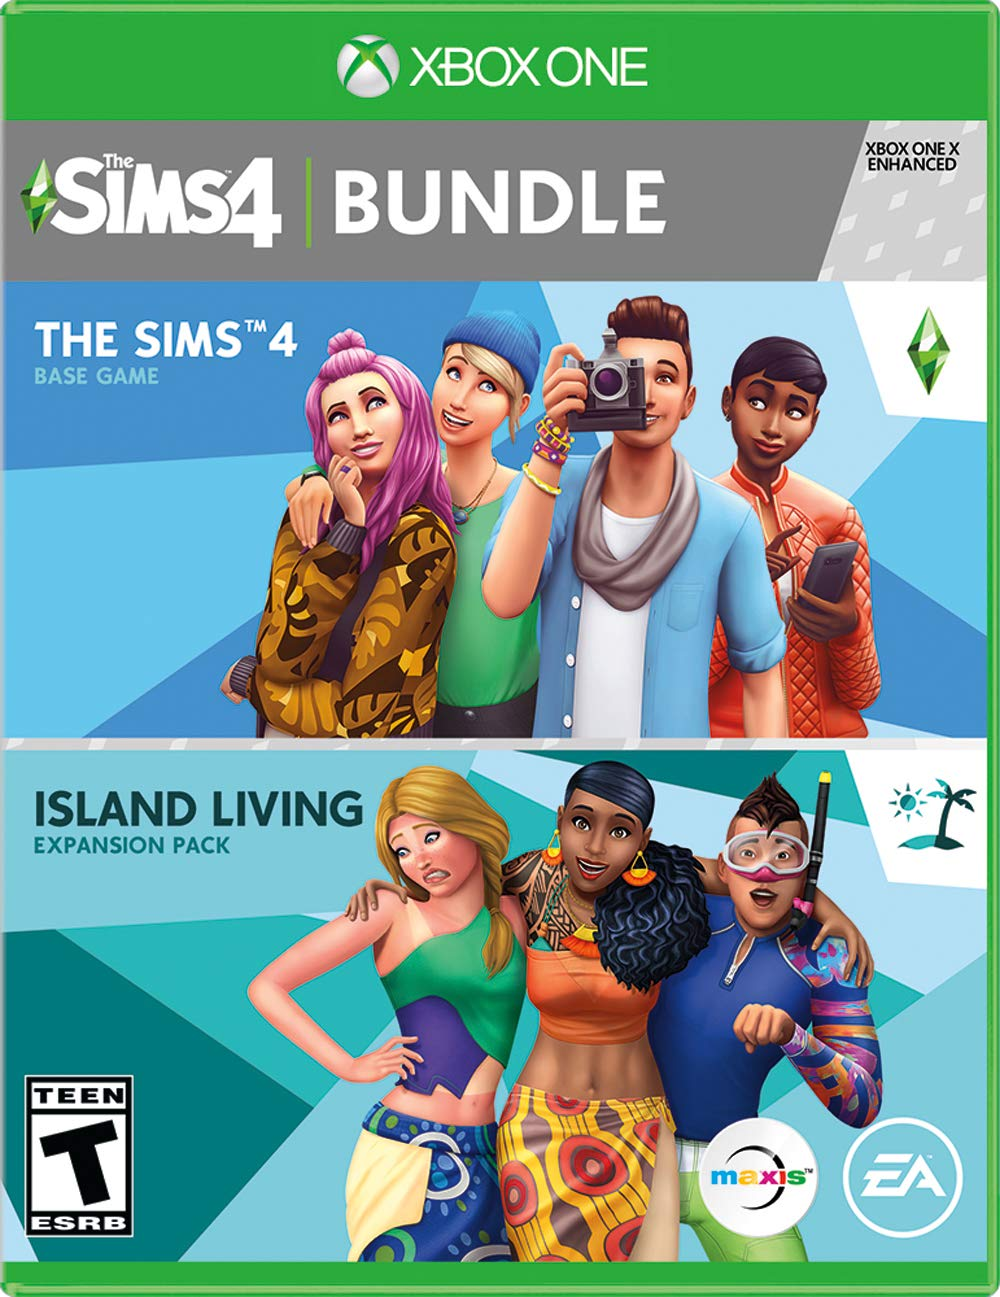 Sims 4 xbox one release date